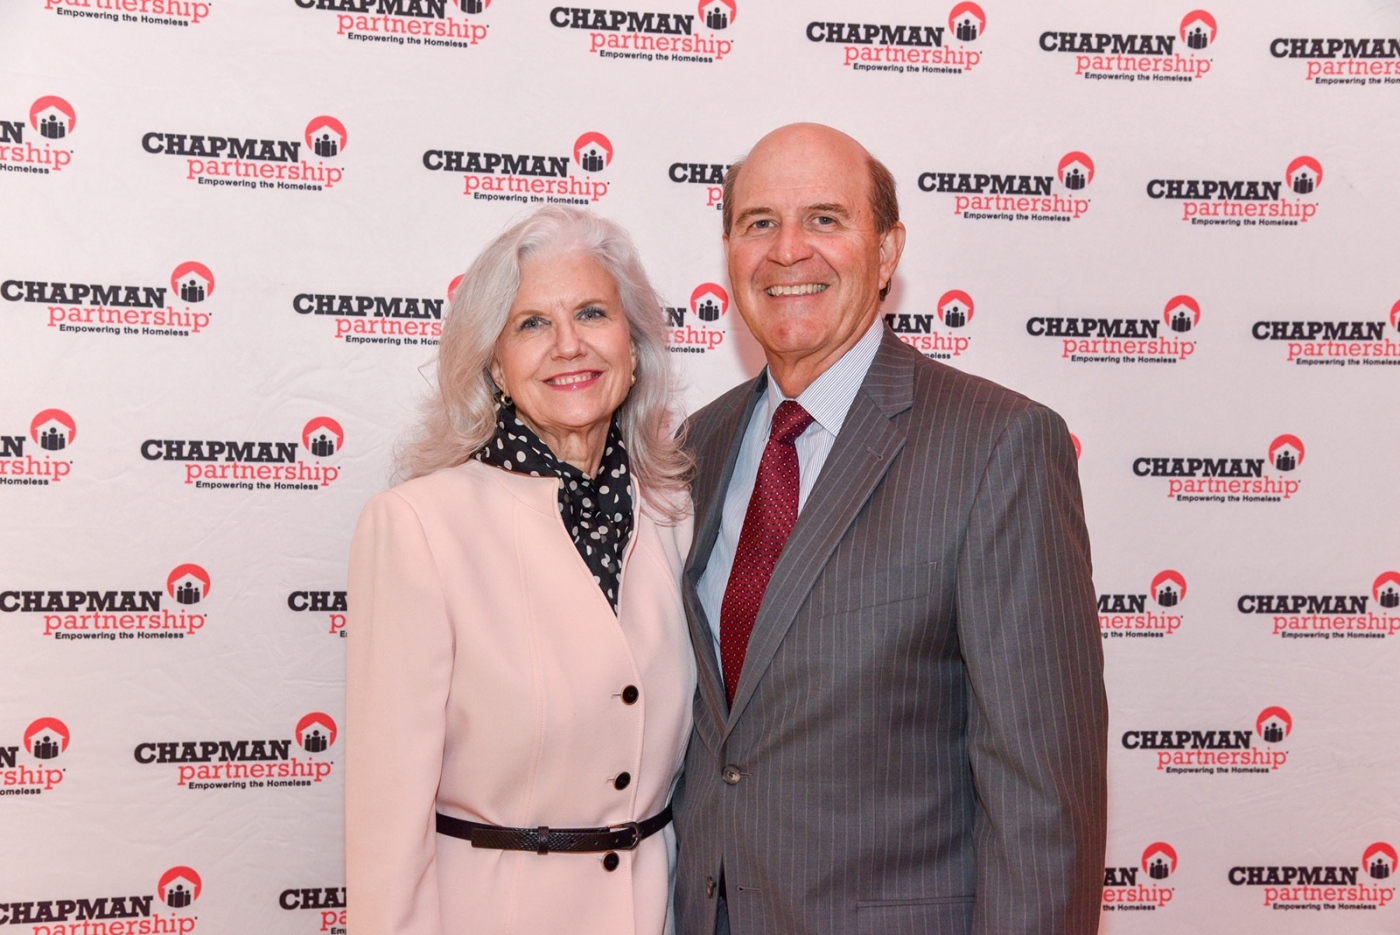 Chapman-Partnership-Chairman-Board-of-Trustee,-Peter-Pruitt-and-his-wife-Barbara-AGS_6913